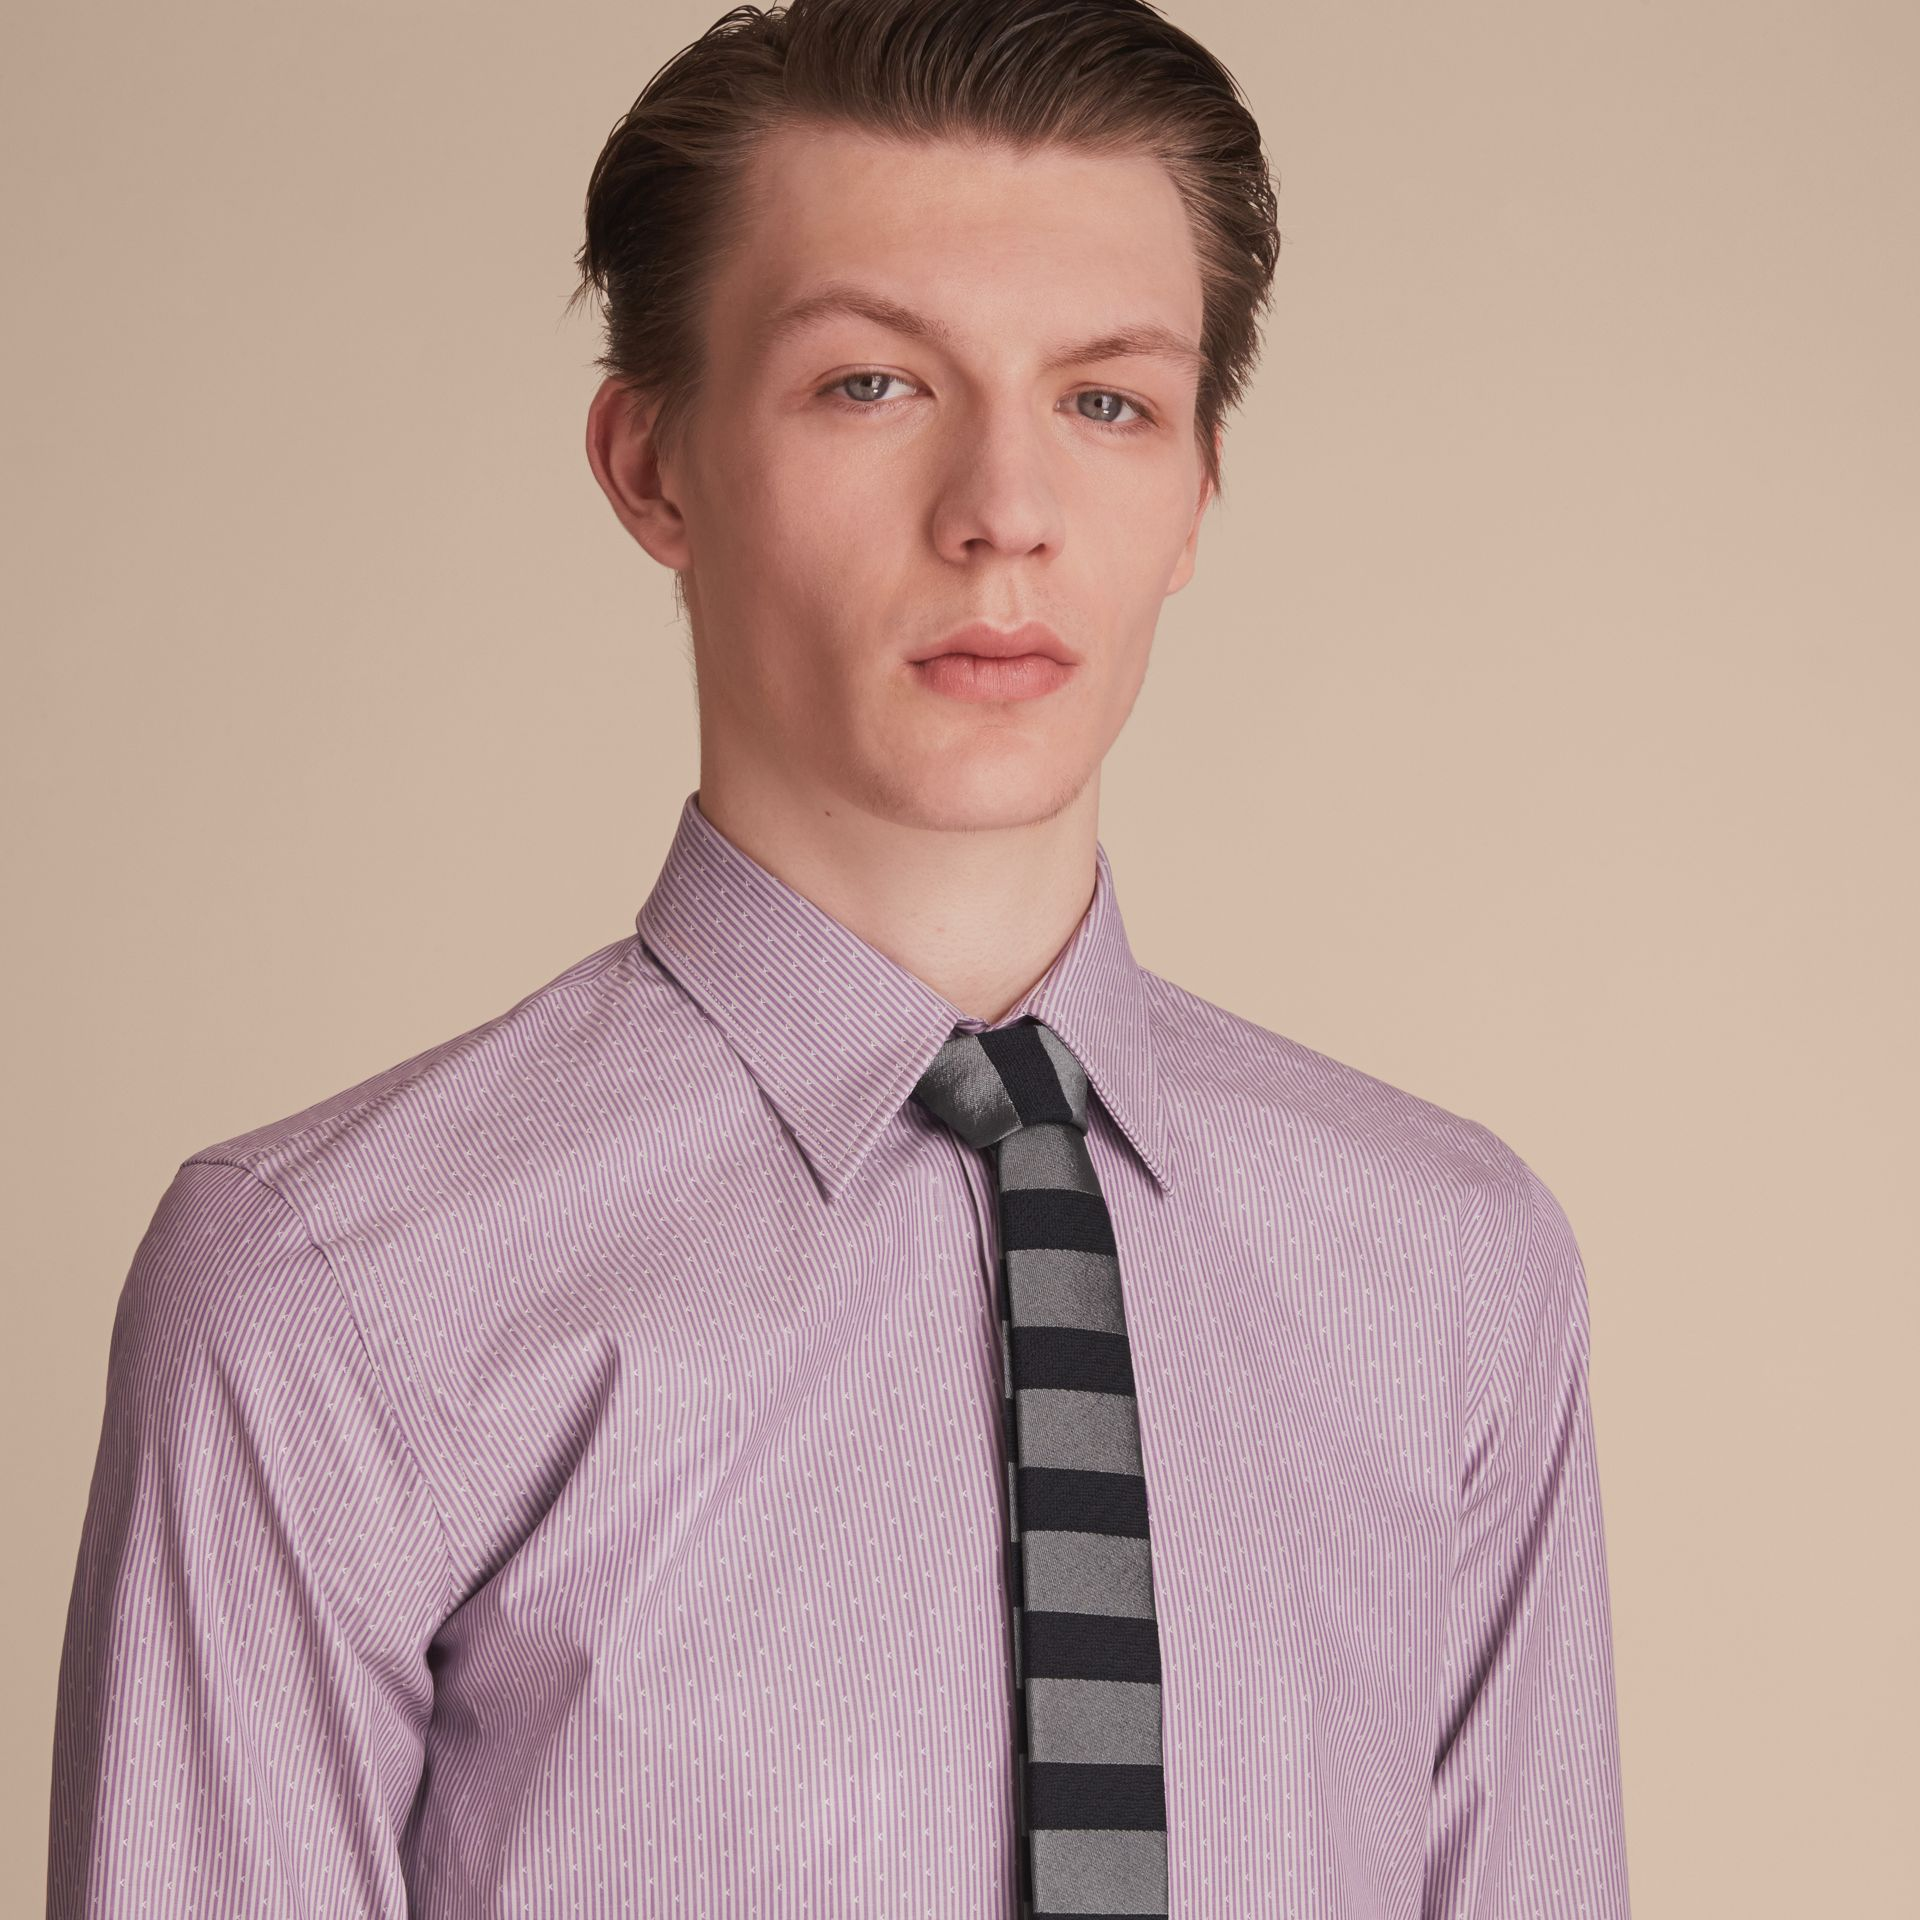 Slim Fit Striped Cross Dobby Cotton Shirt in Heather - Men | Burberry - gallery image 5